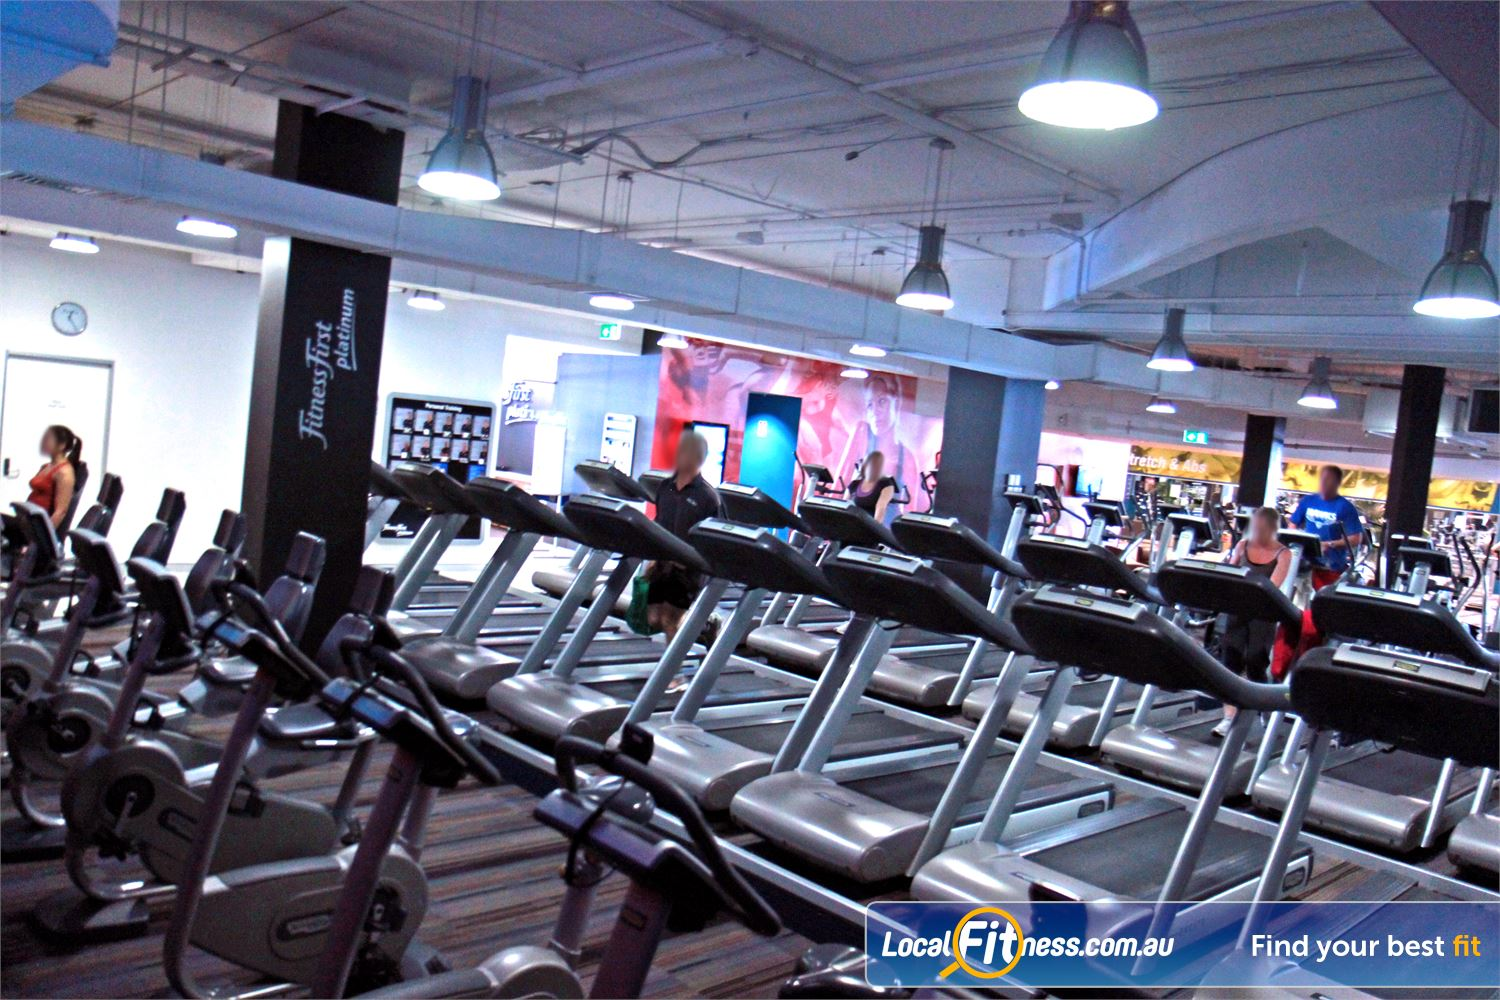 Goodlife Health Clubs Subiaco Multiple cardio machines help to reduce wait times and keep you training.